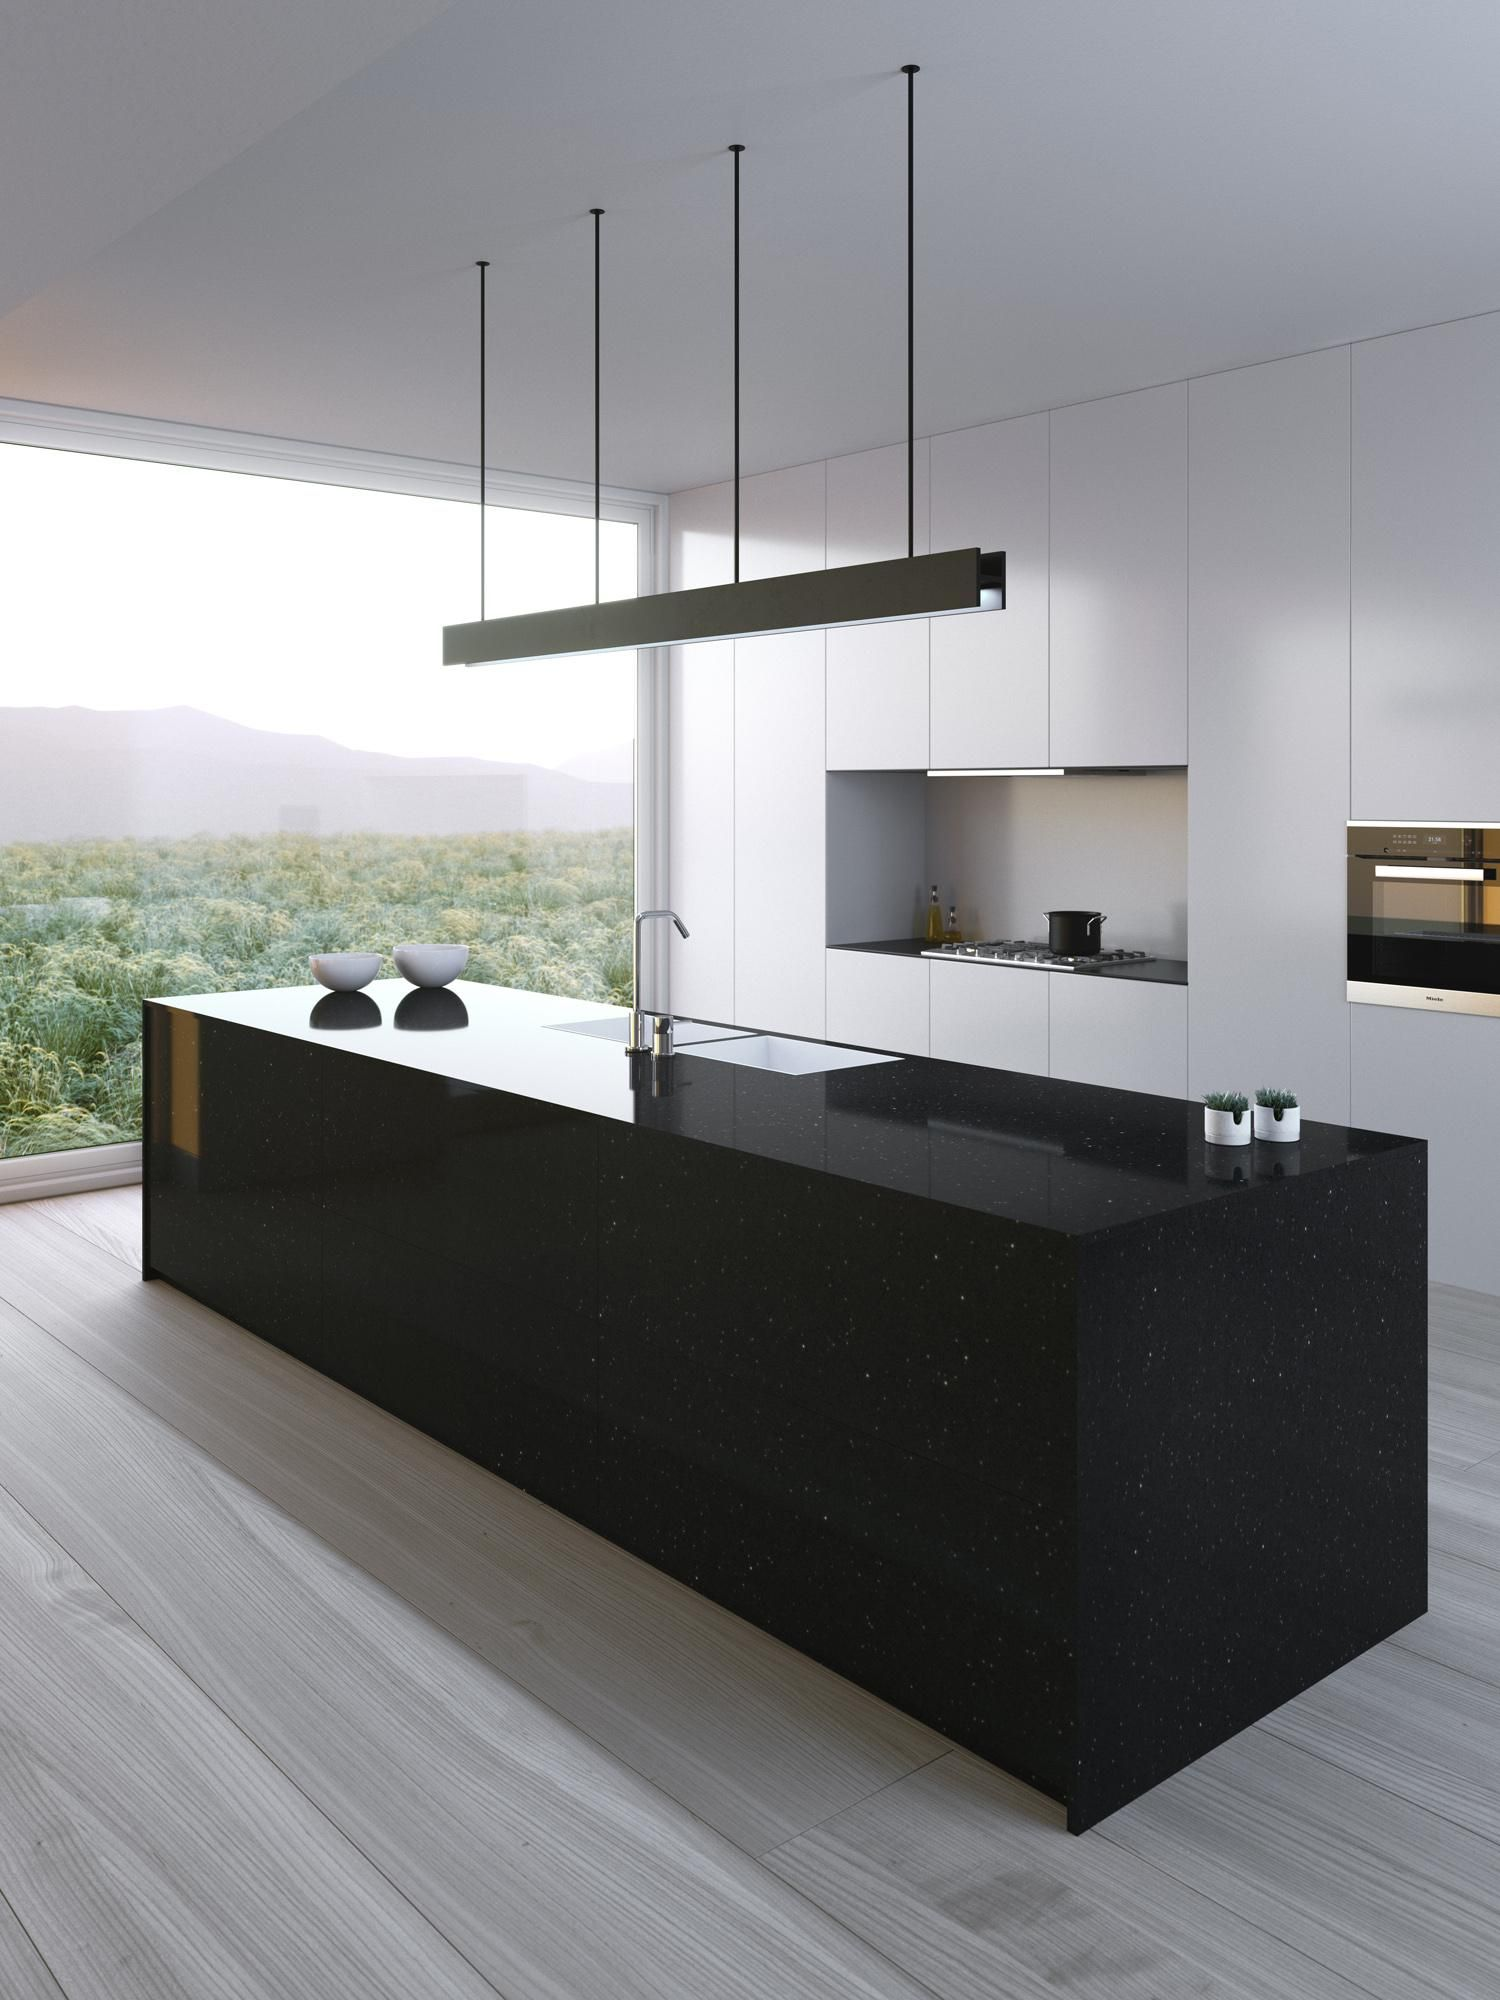 Stellar Night Kitchen Countertop From Silestone By Cosentino KITCHEN Amp DINING In 2019 Home